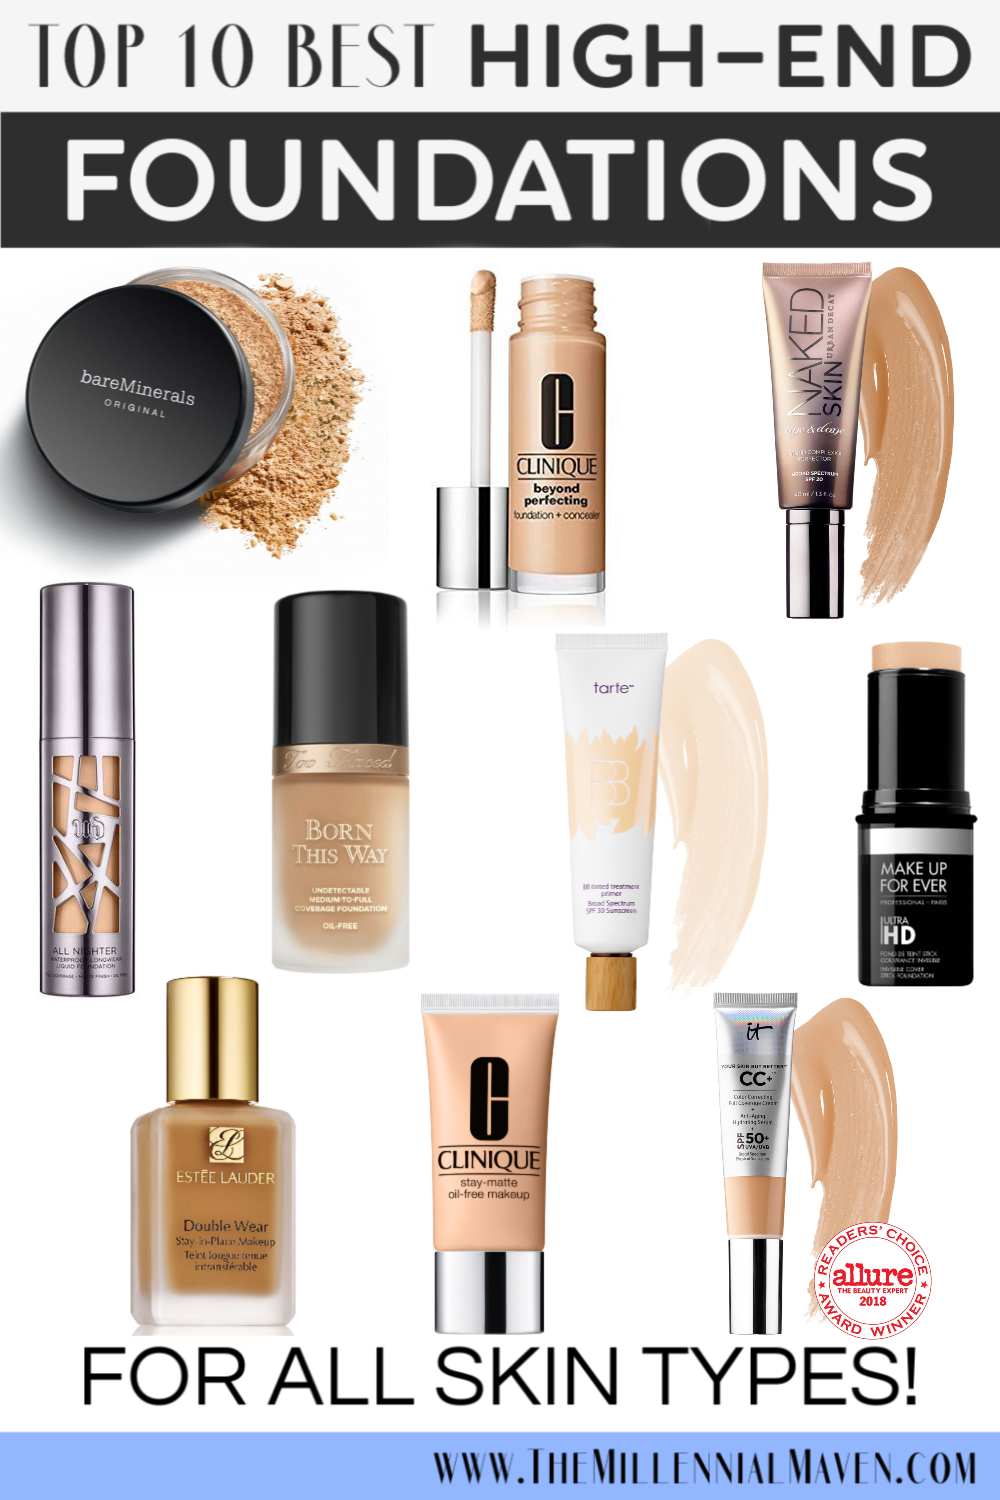 *UPDATED 2019* My 10 Favorite HighEnd Foundations For All